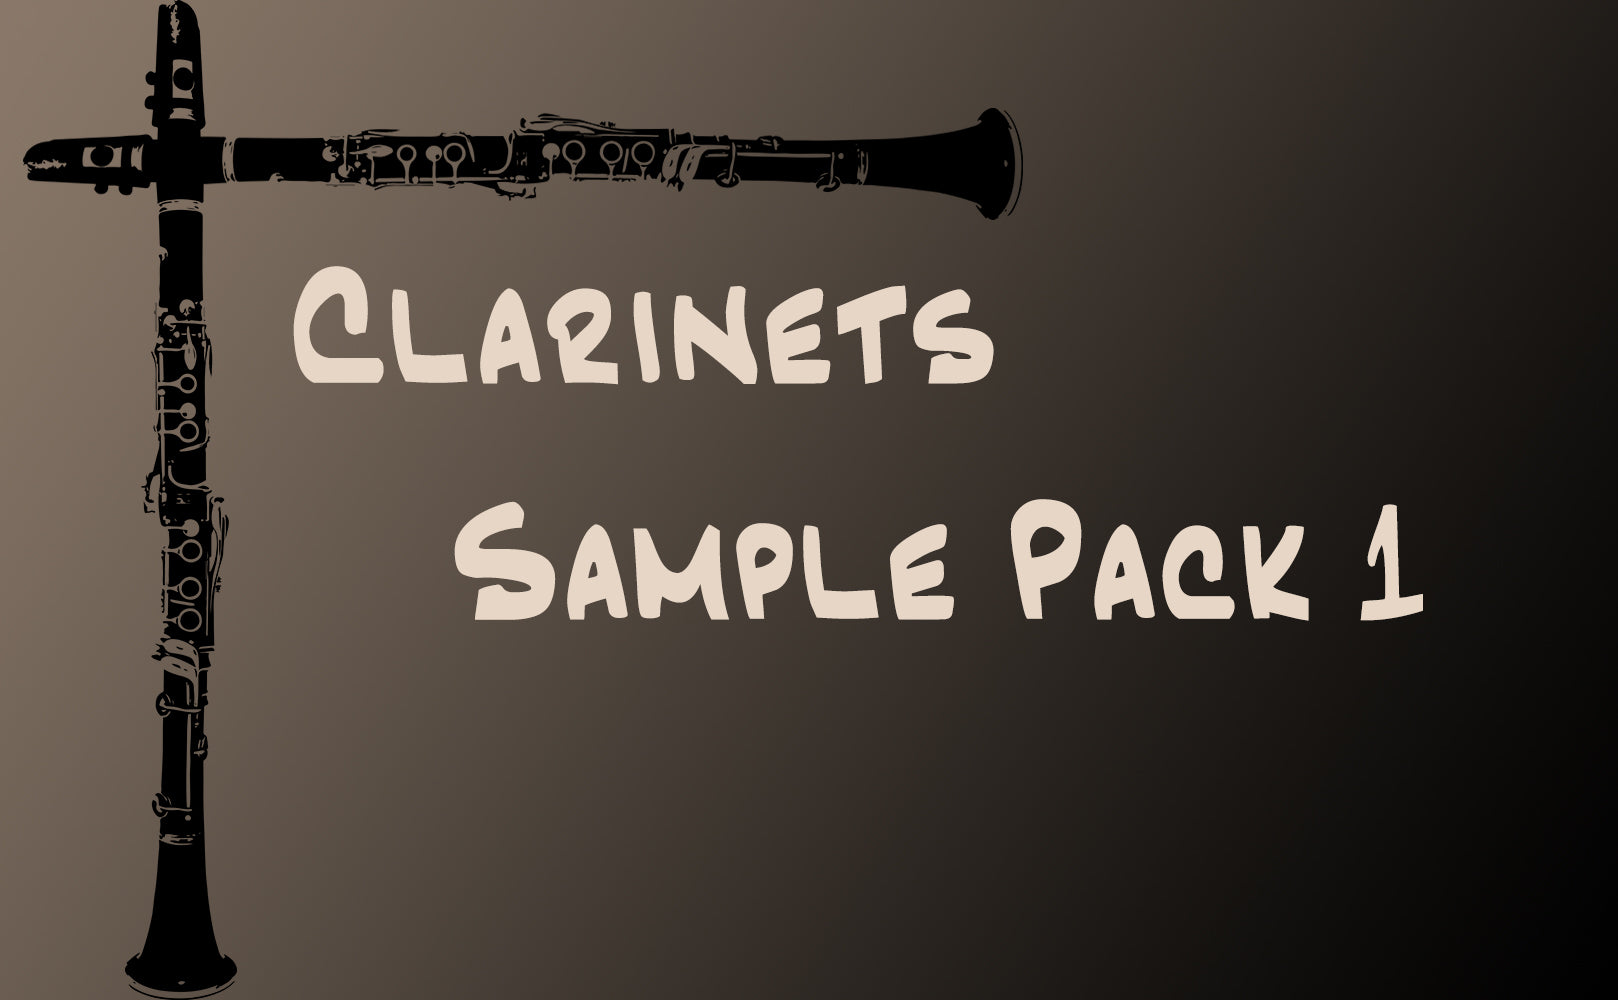 Clarinets Sample Pack 1 - Click to Listen